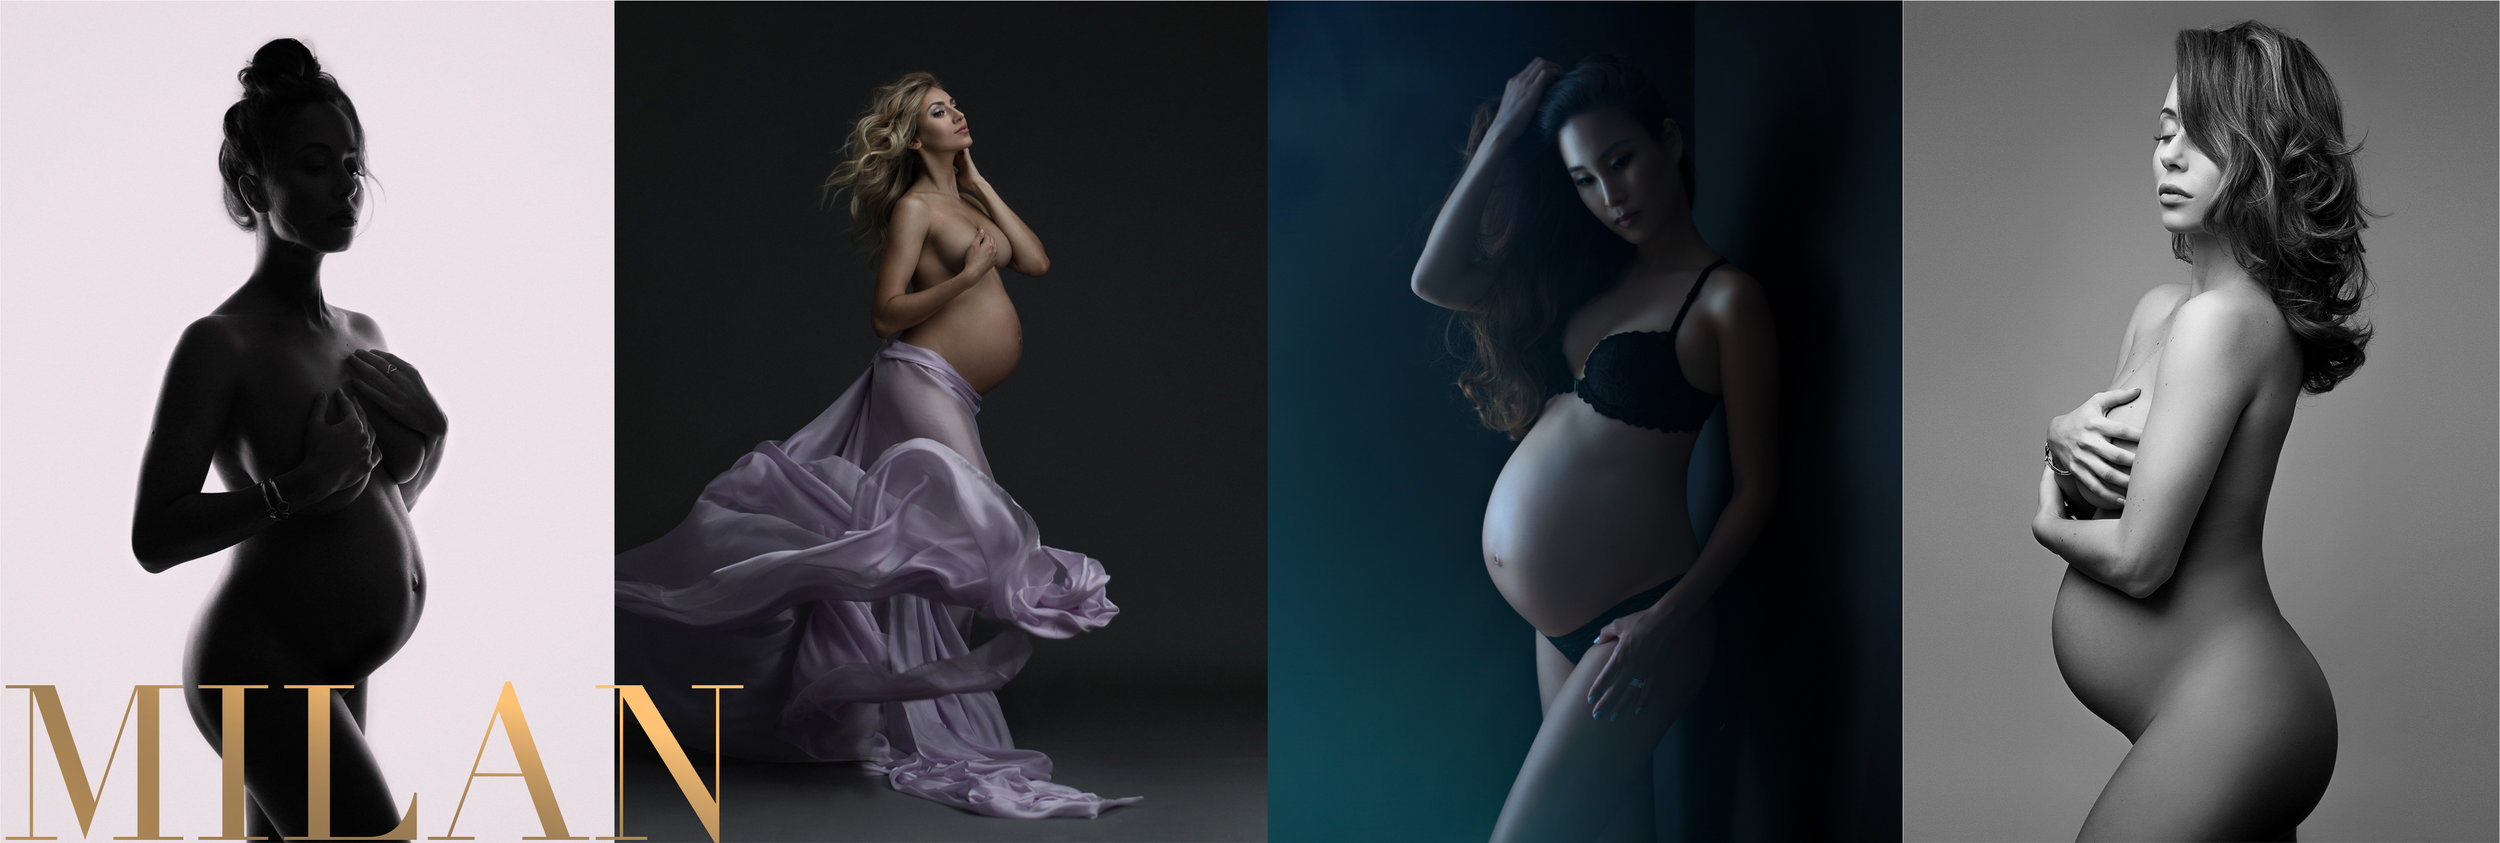 Lola Melani maternity photography workshop.jpg